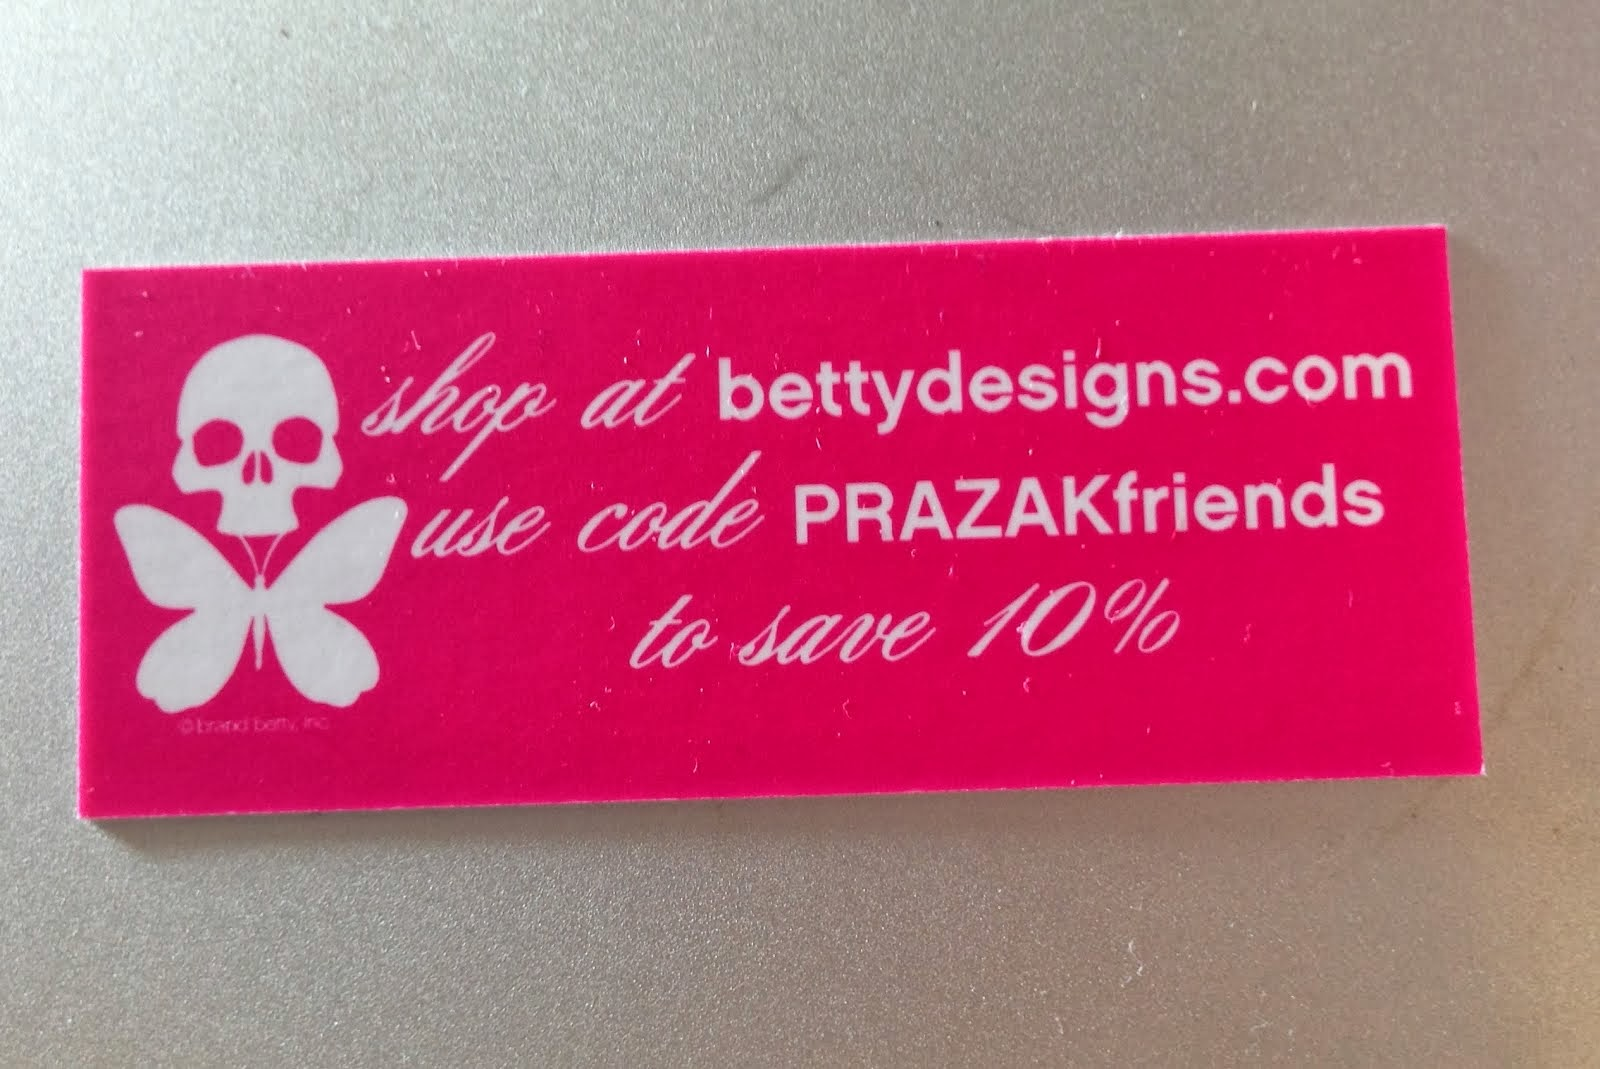 I'm a Betty! And I want you to enjoy a discount on Betty Designs apparel, gear and more!